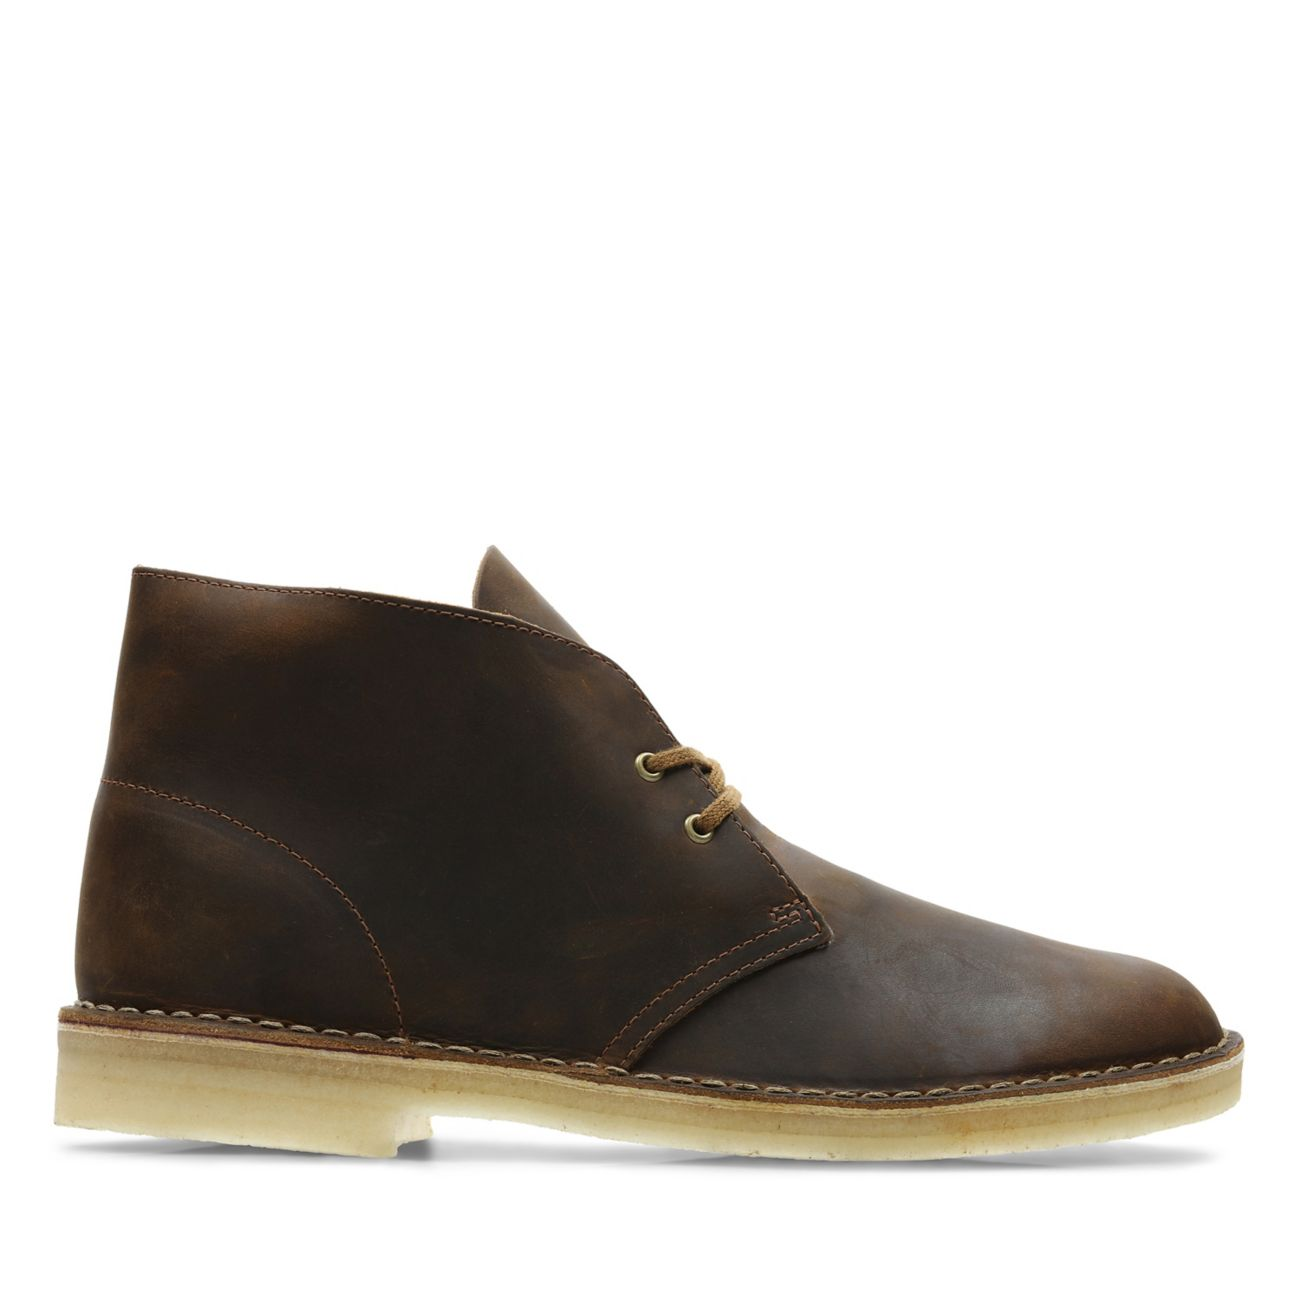 b6b3285083f8f7 Desert Boot Beeswax | Clarks Shoes Official Site | Clarks